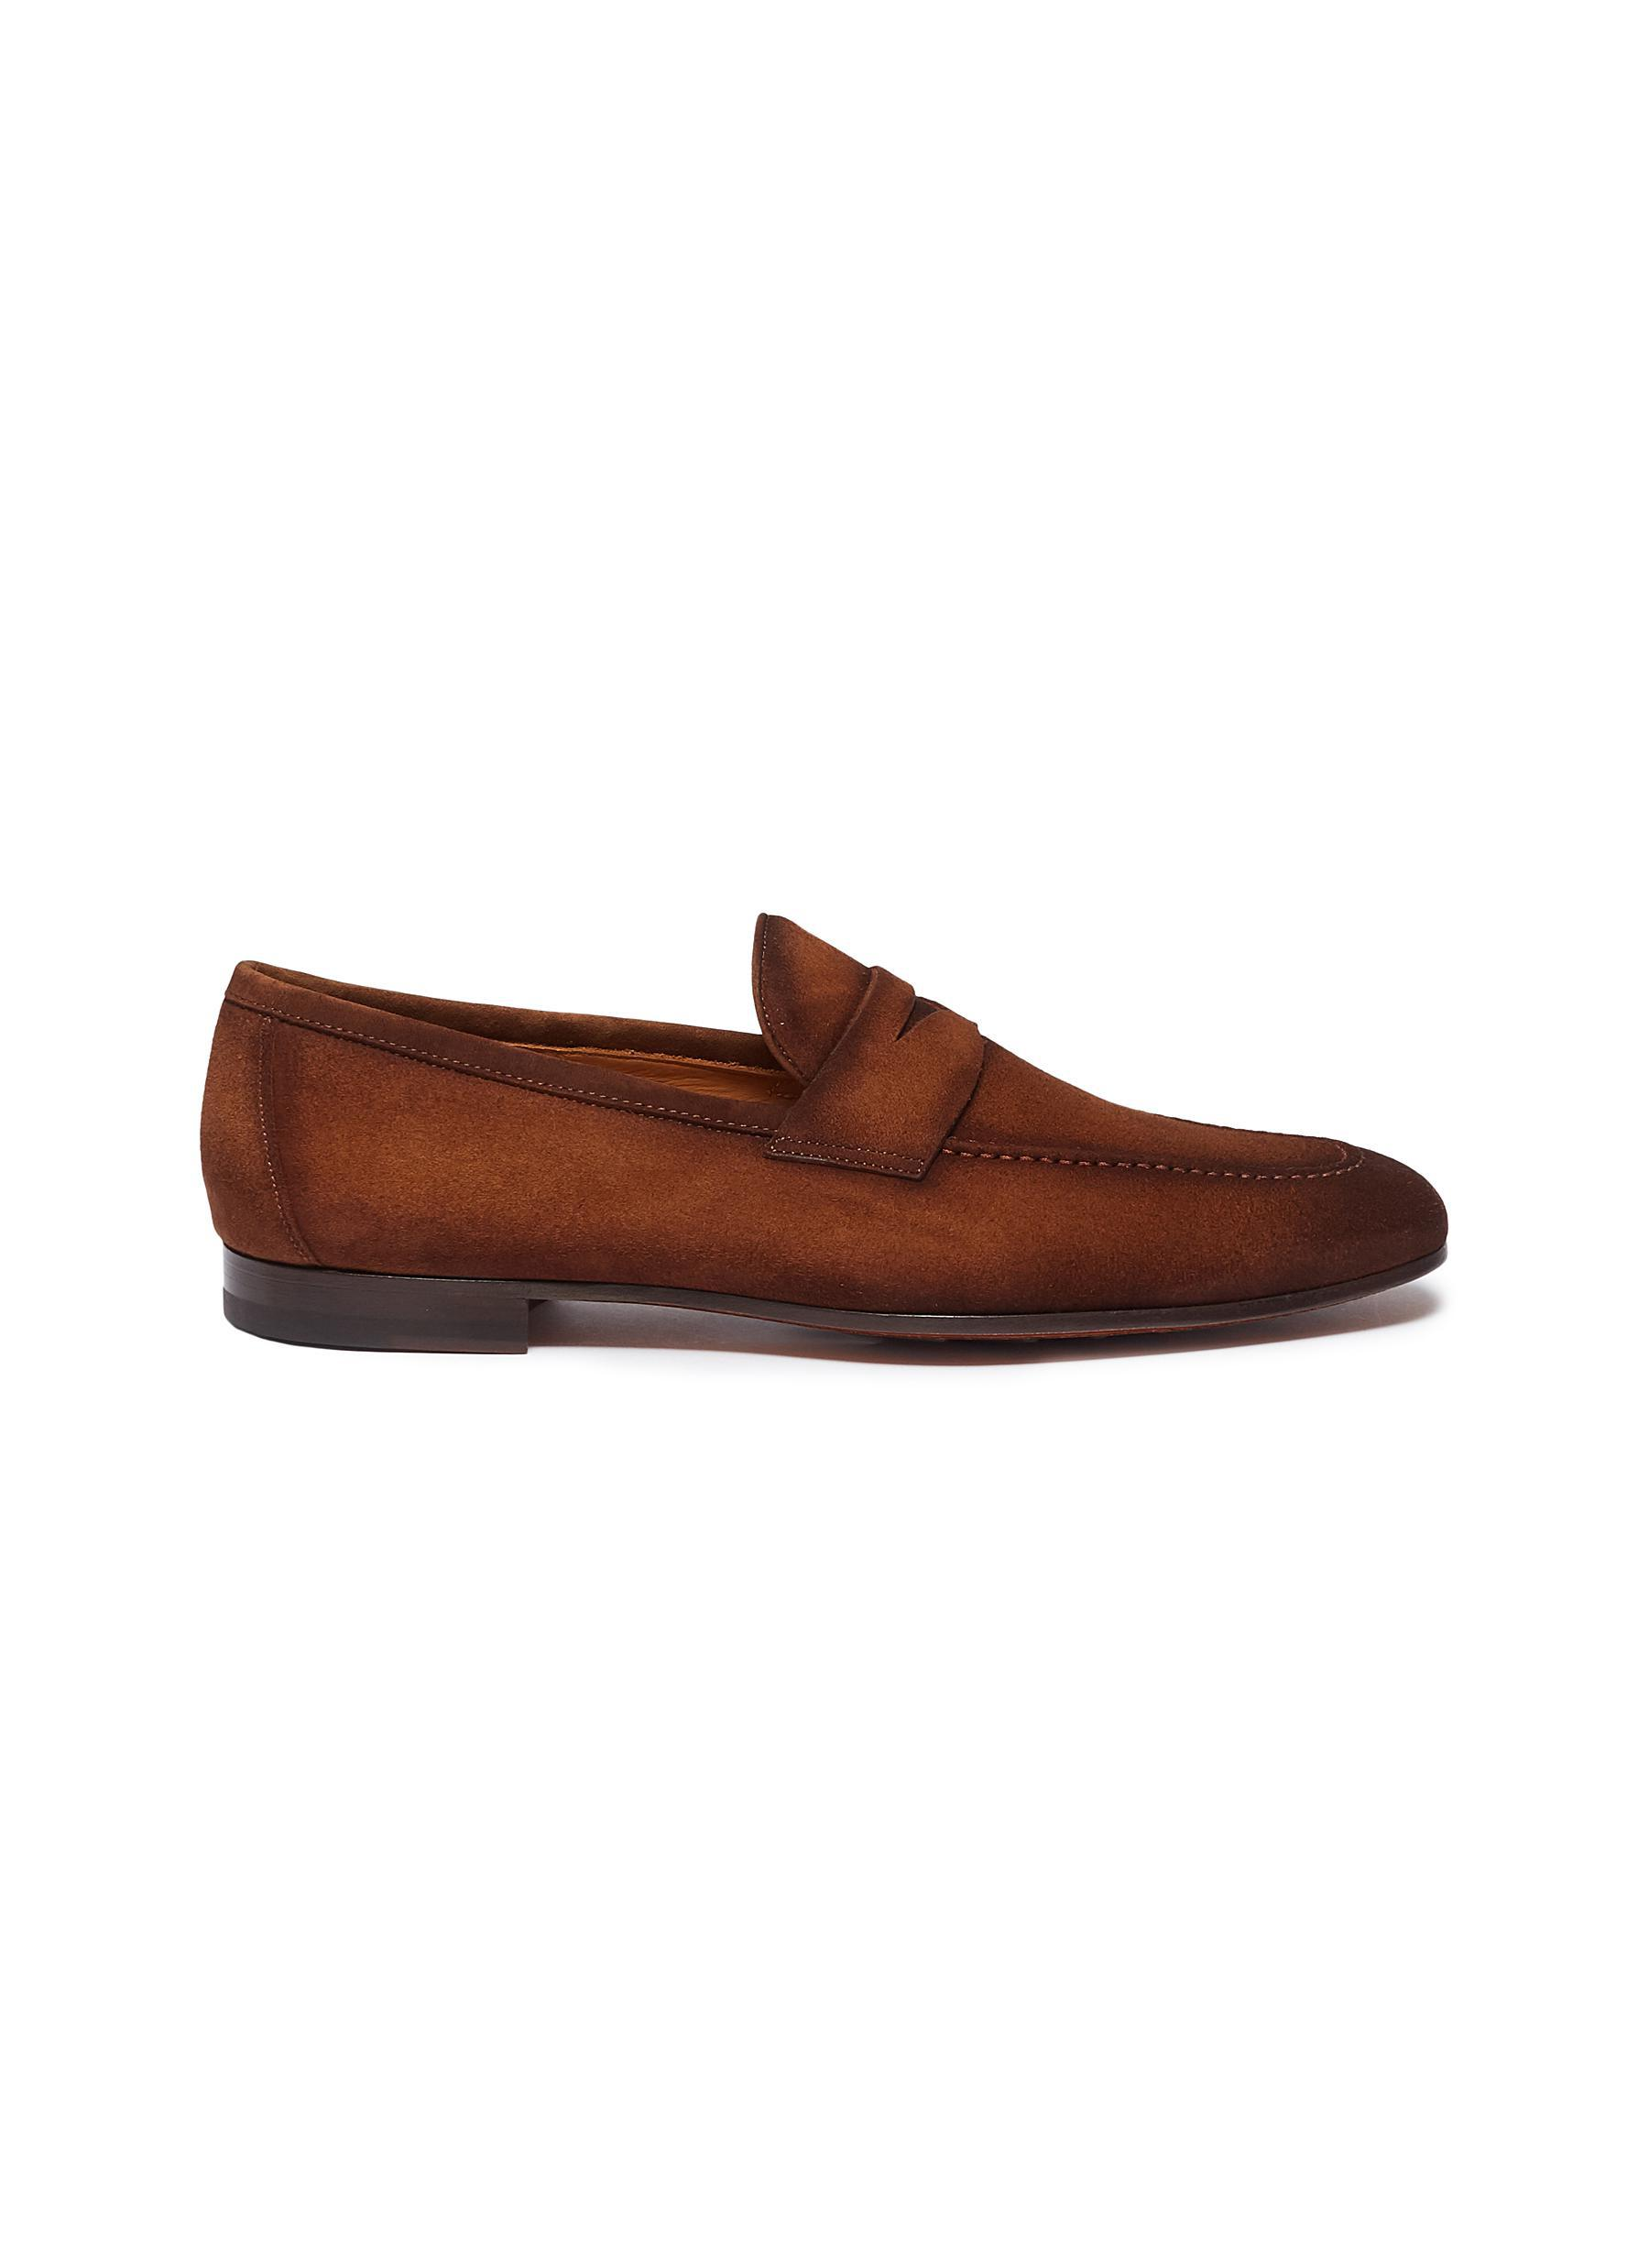 25b8c1e372f Lyst - Magnanni Suede Penny Loafers in Brown for Men